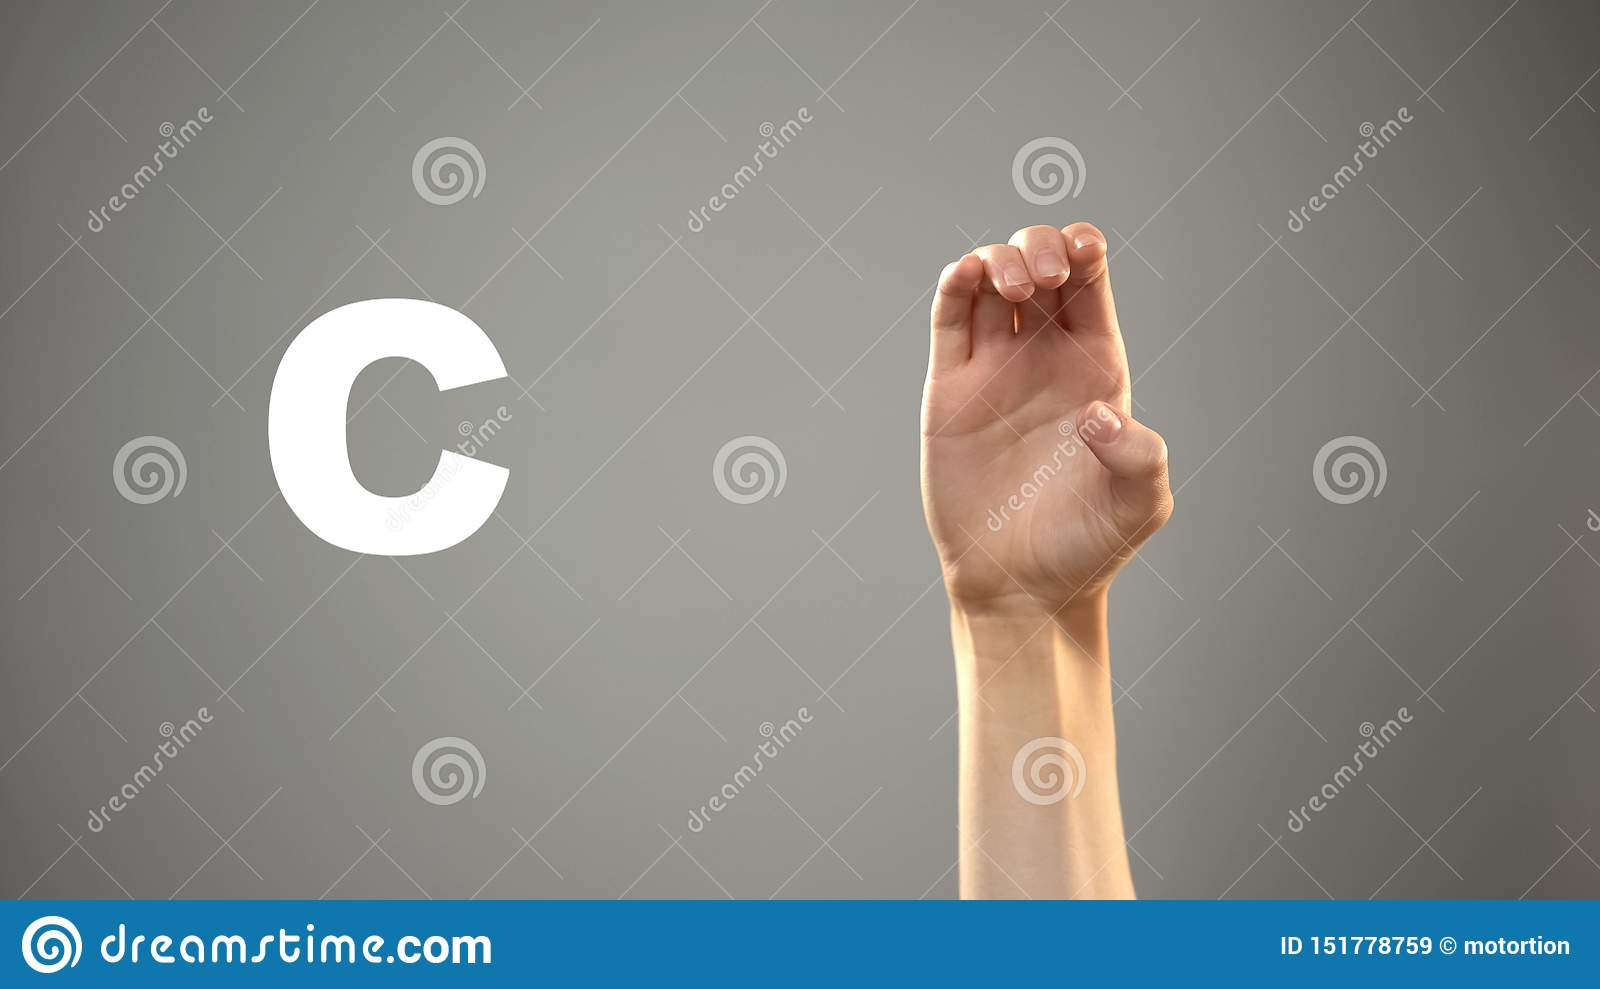 Letter C in sign language, hand on background, communication for deaf, lesson